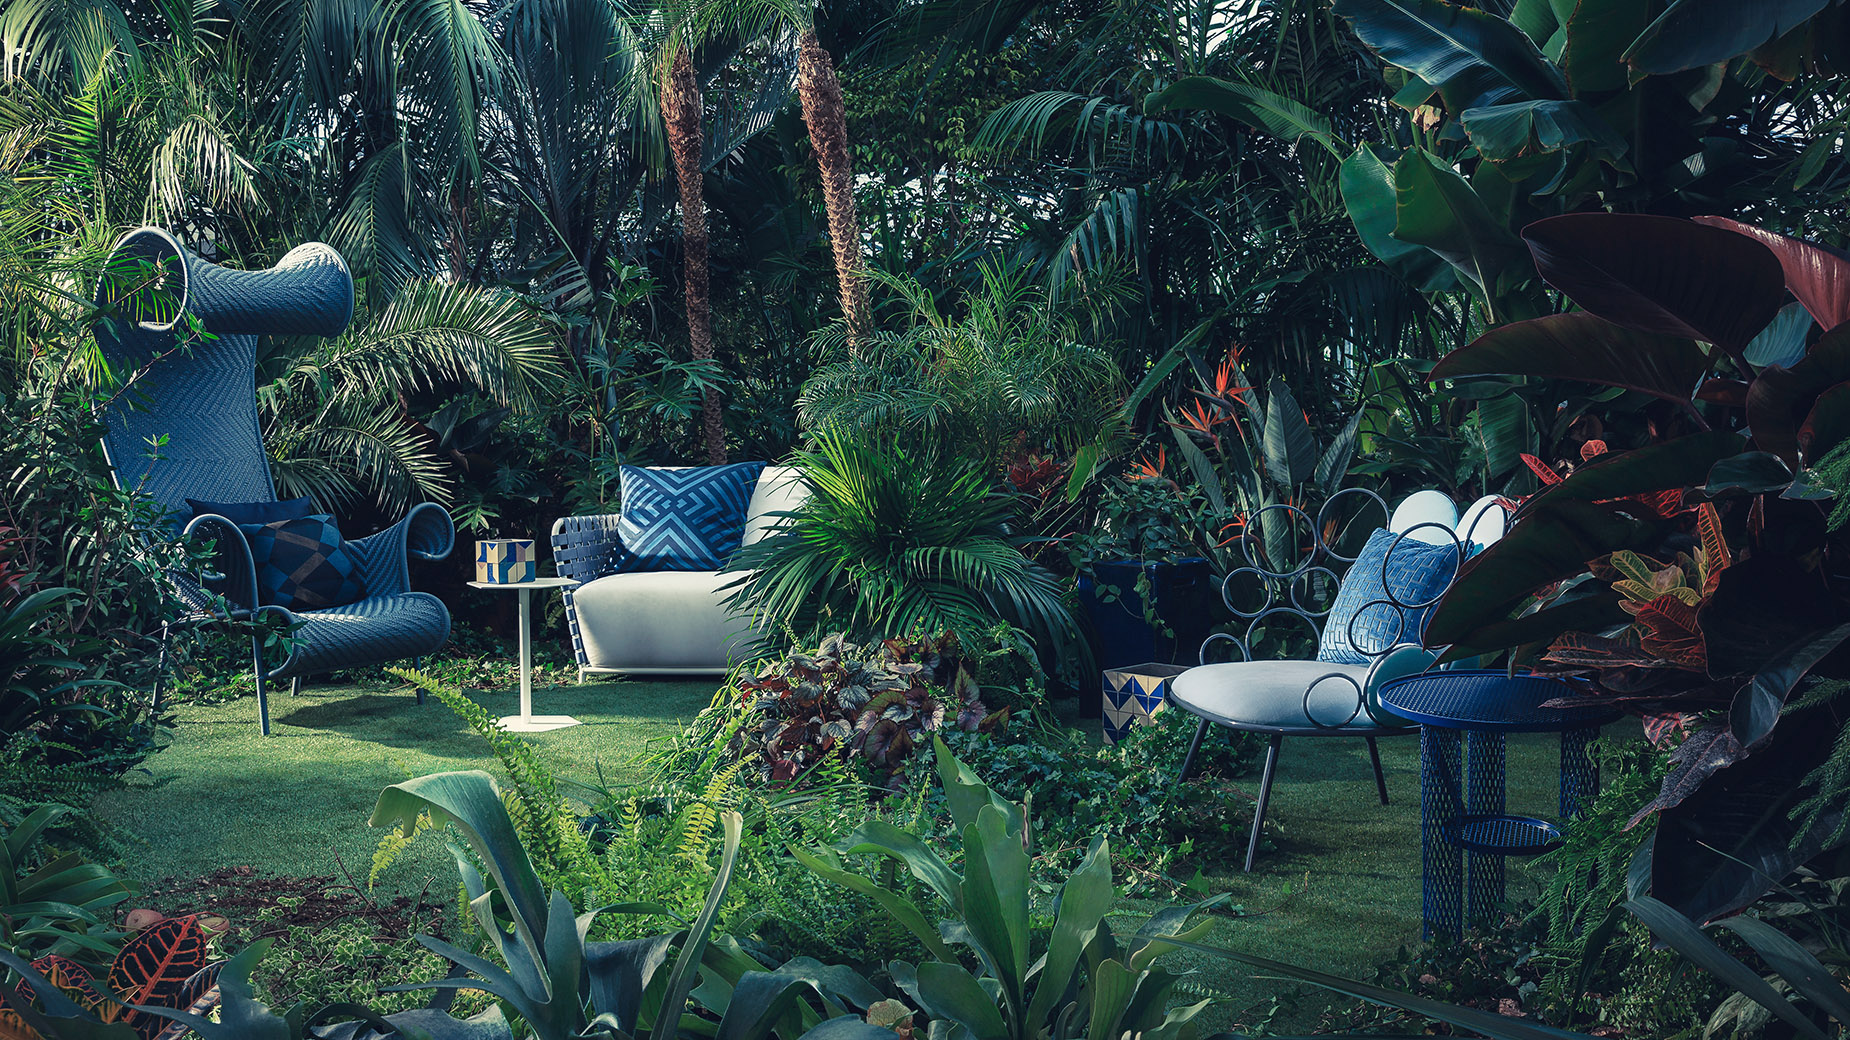 A Tropical And Jungle Photographic Series